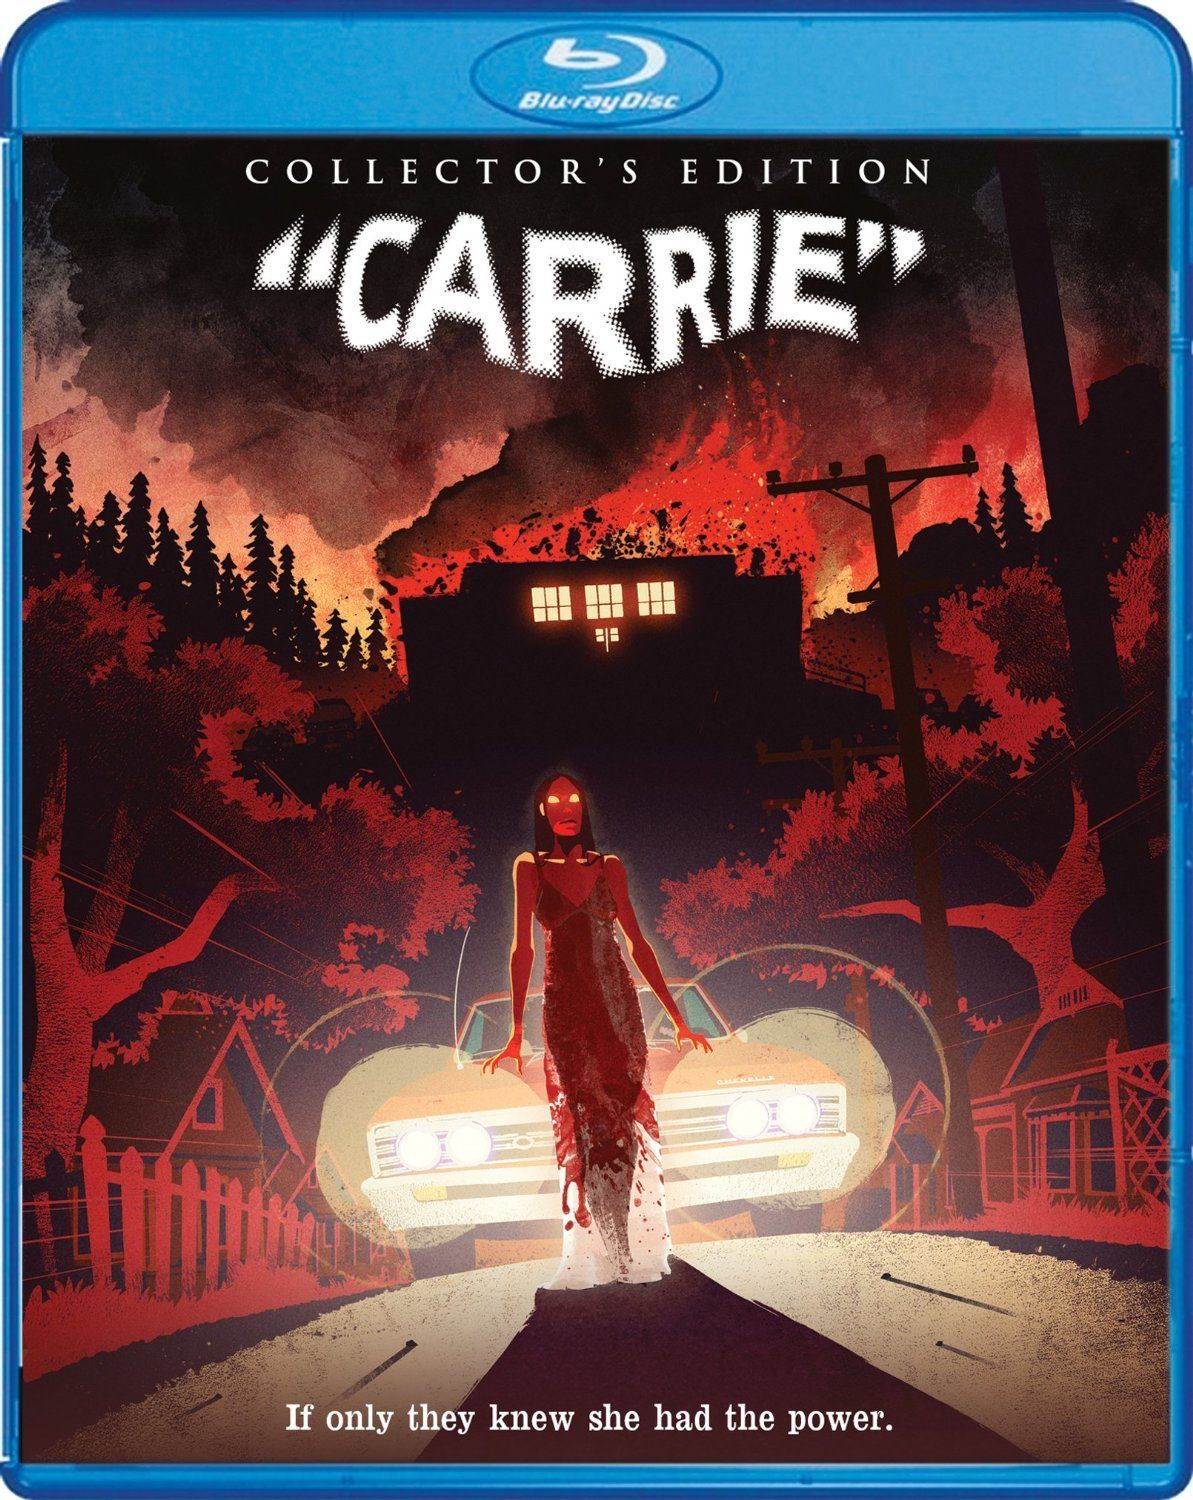 Carrie Bluray Collector's Edition Horror movie art